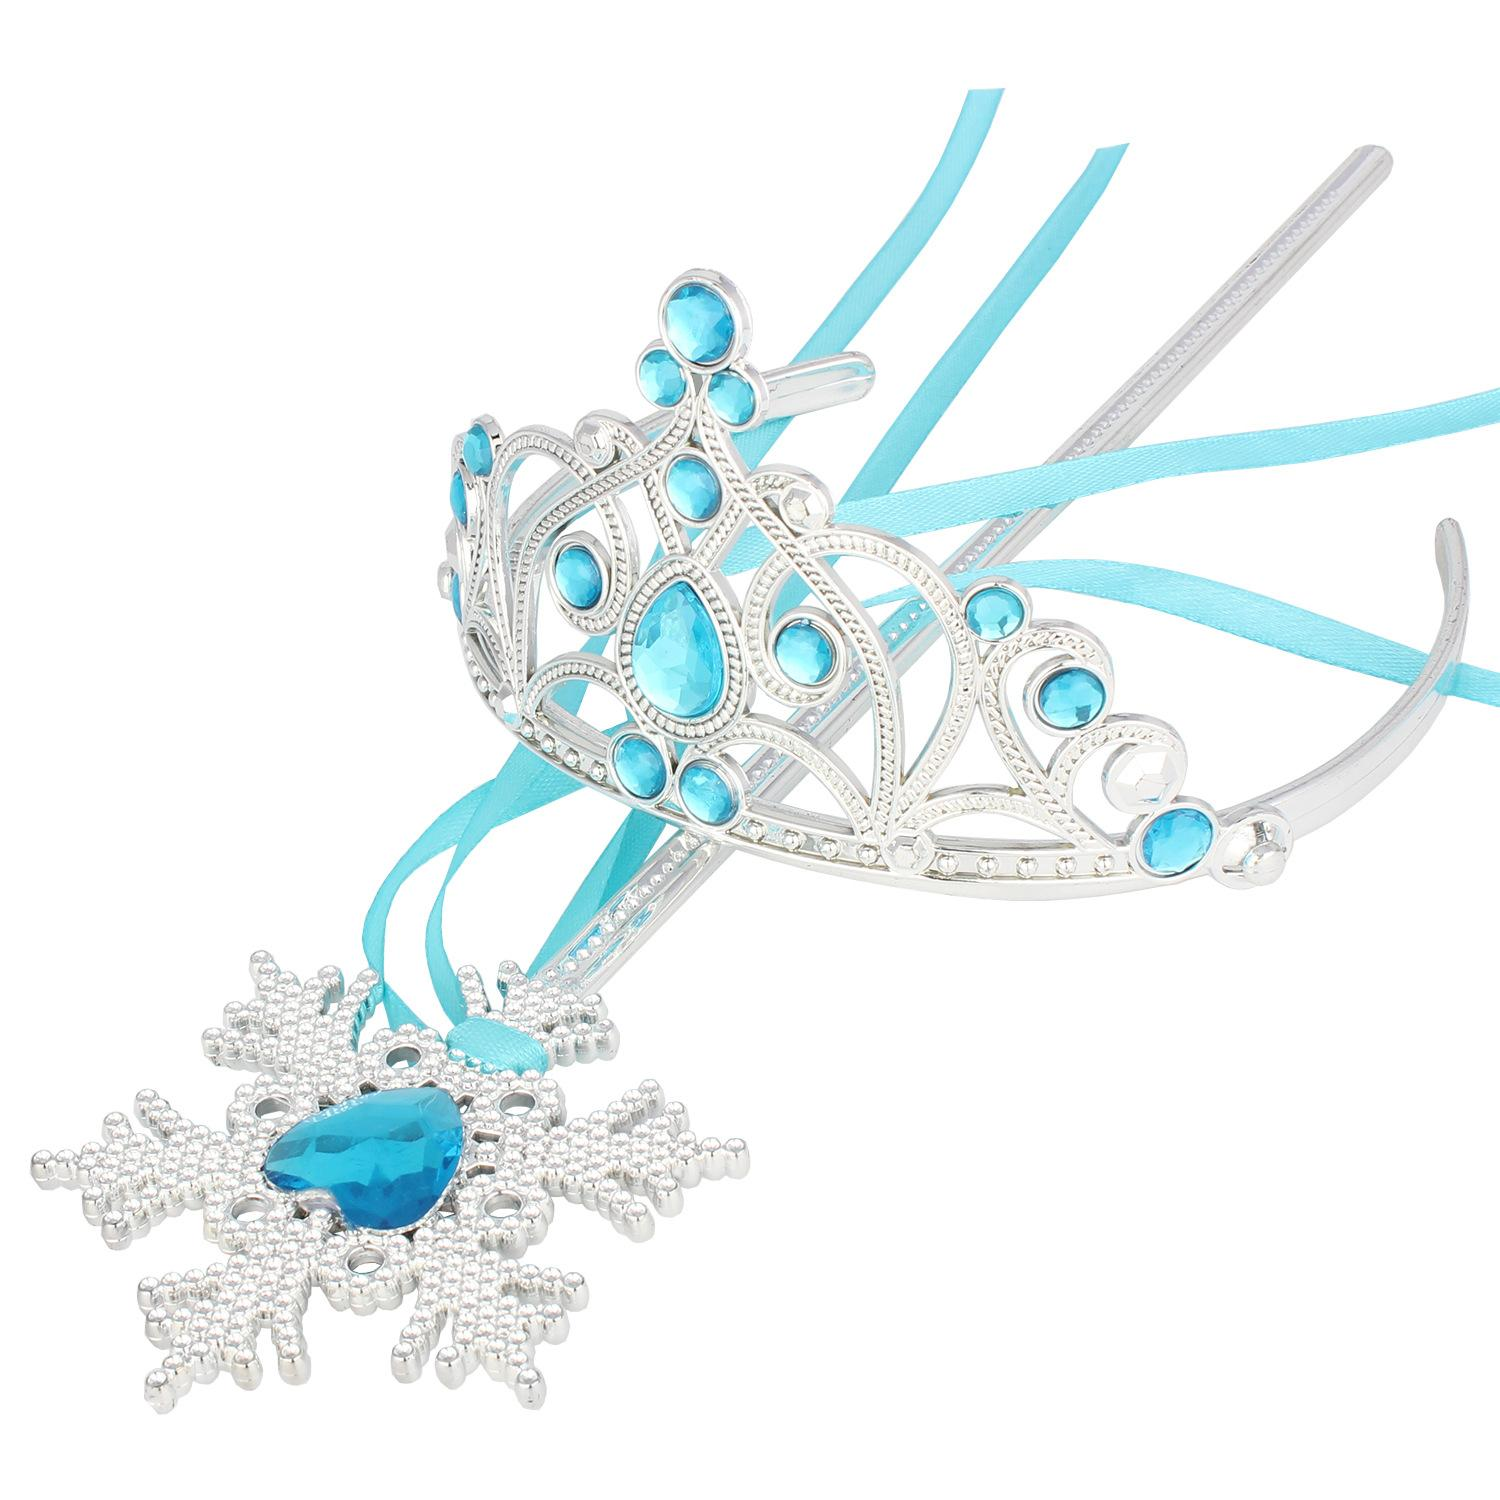 Cosplay Crown Princess Set Crystal Crown + Snowflake Magic Wands Bambini Baby Diademi Light Blue Fasce XMAS Accessori Regali PX-C11